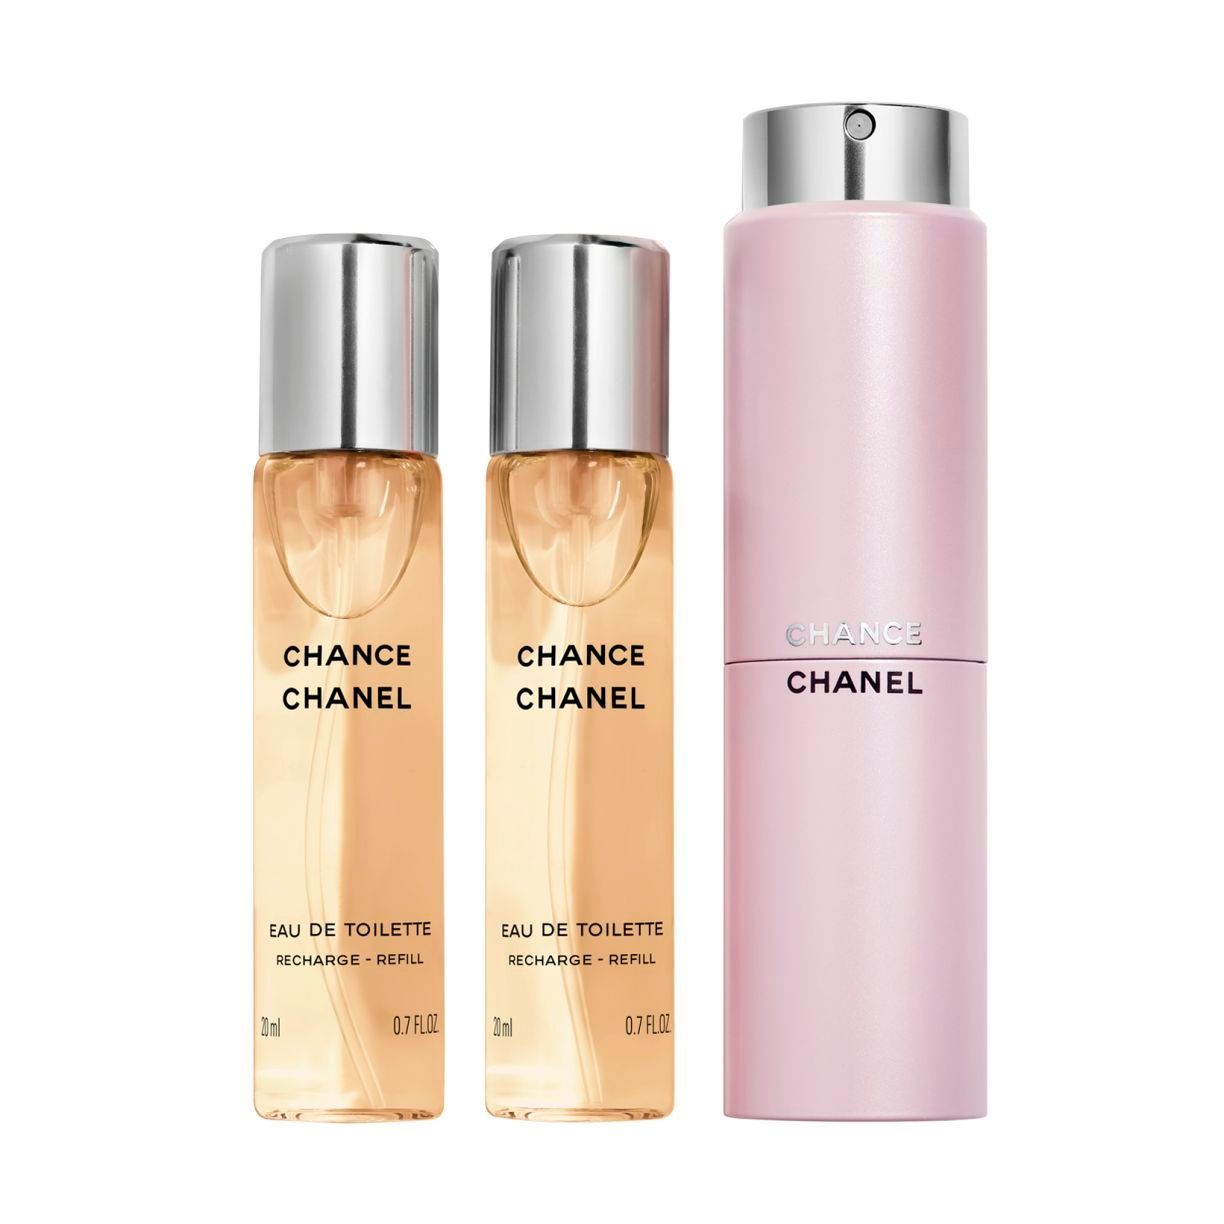 CHANCE EAU DE TOILETTE TWIST AND SPRAY